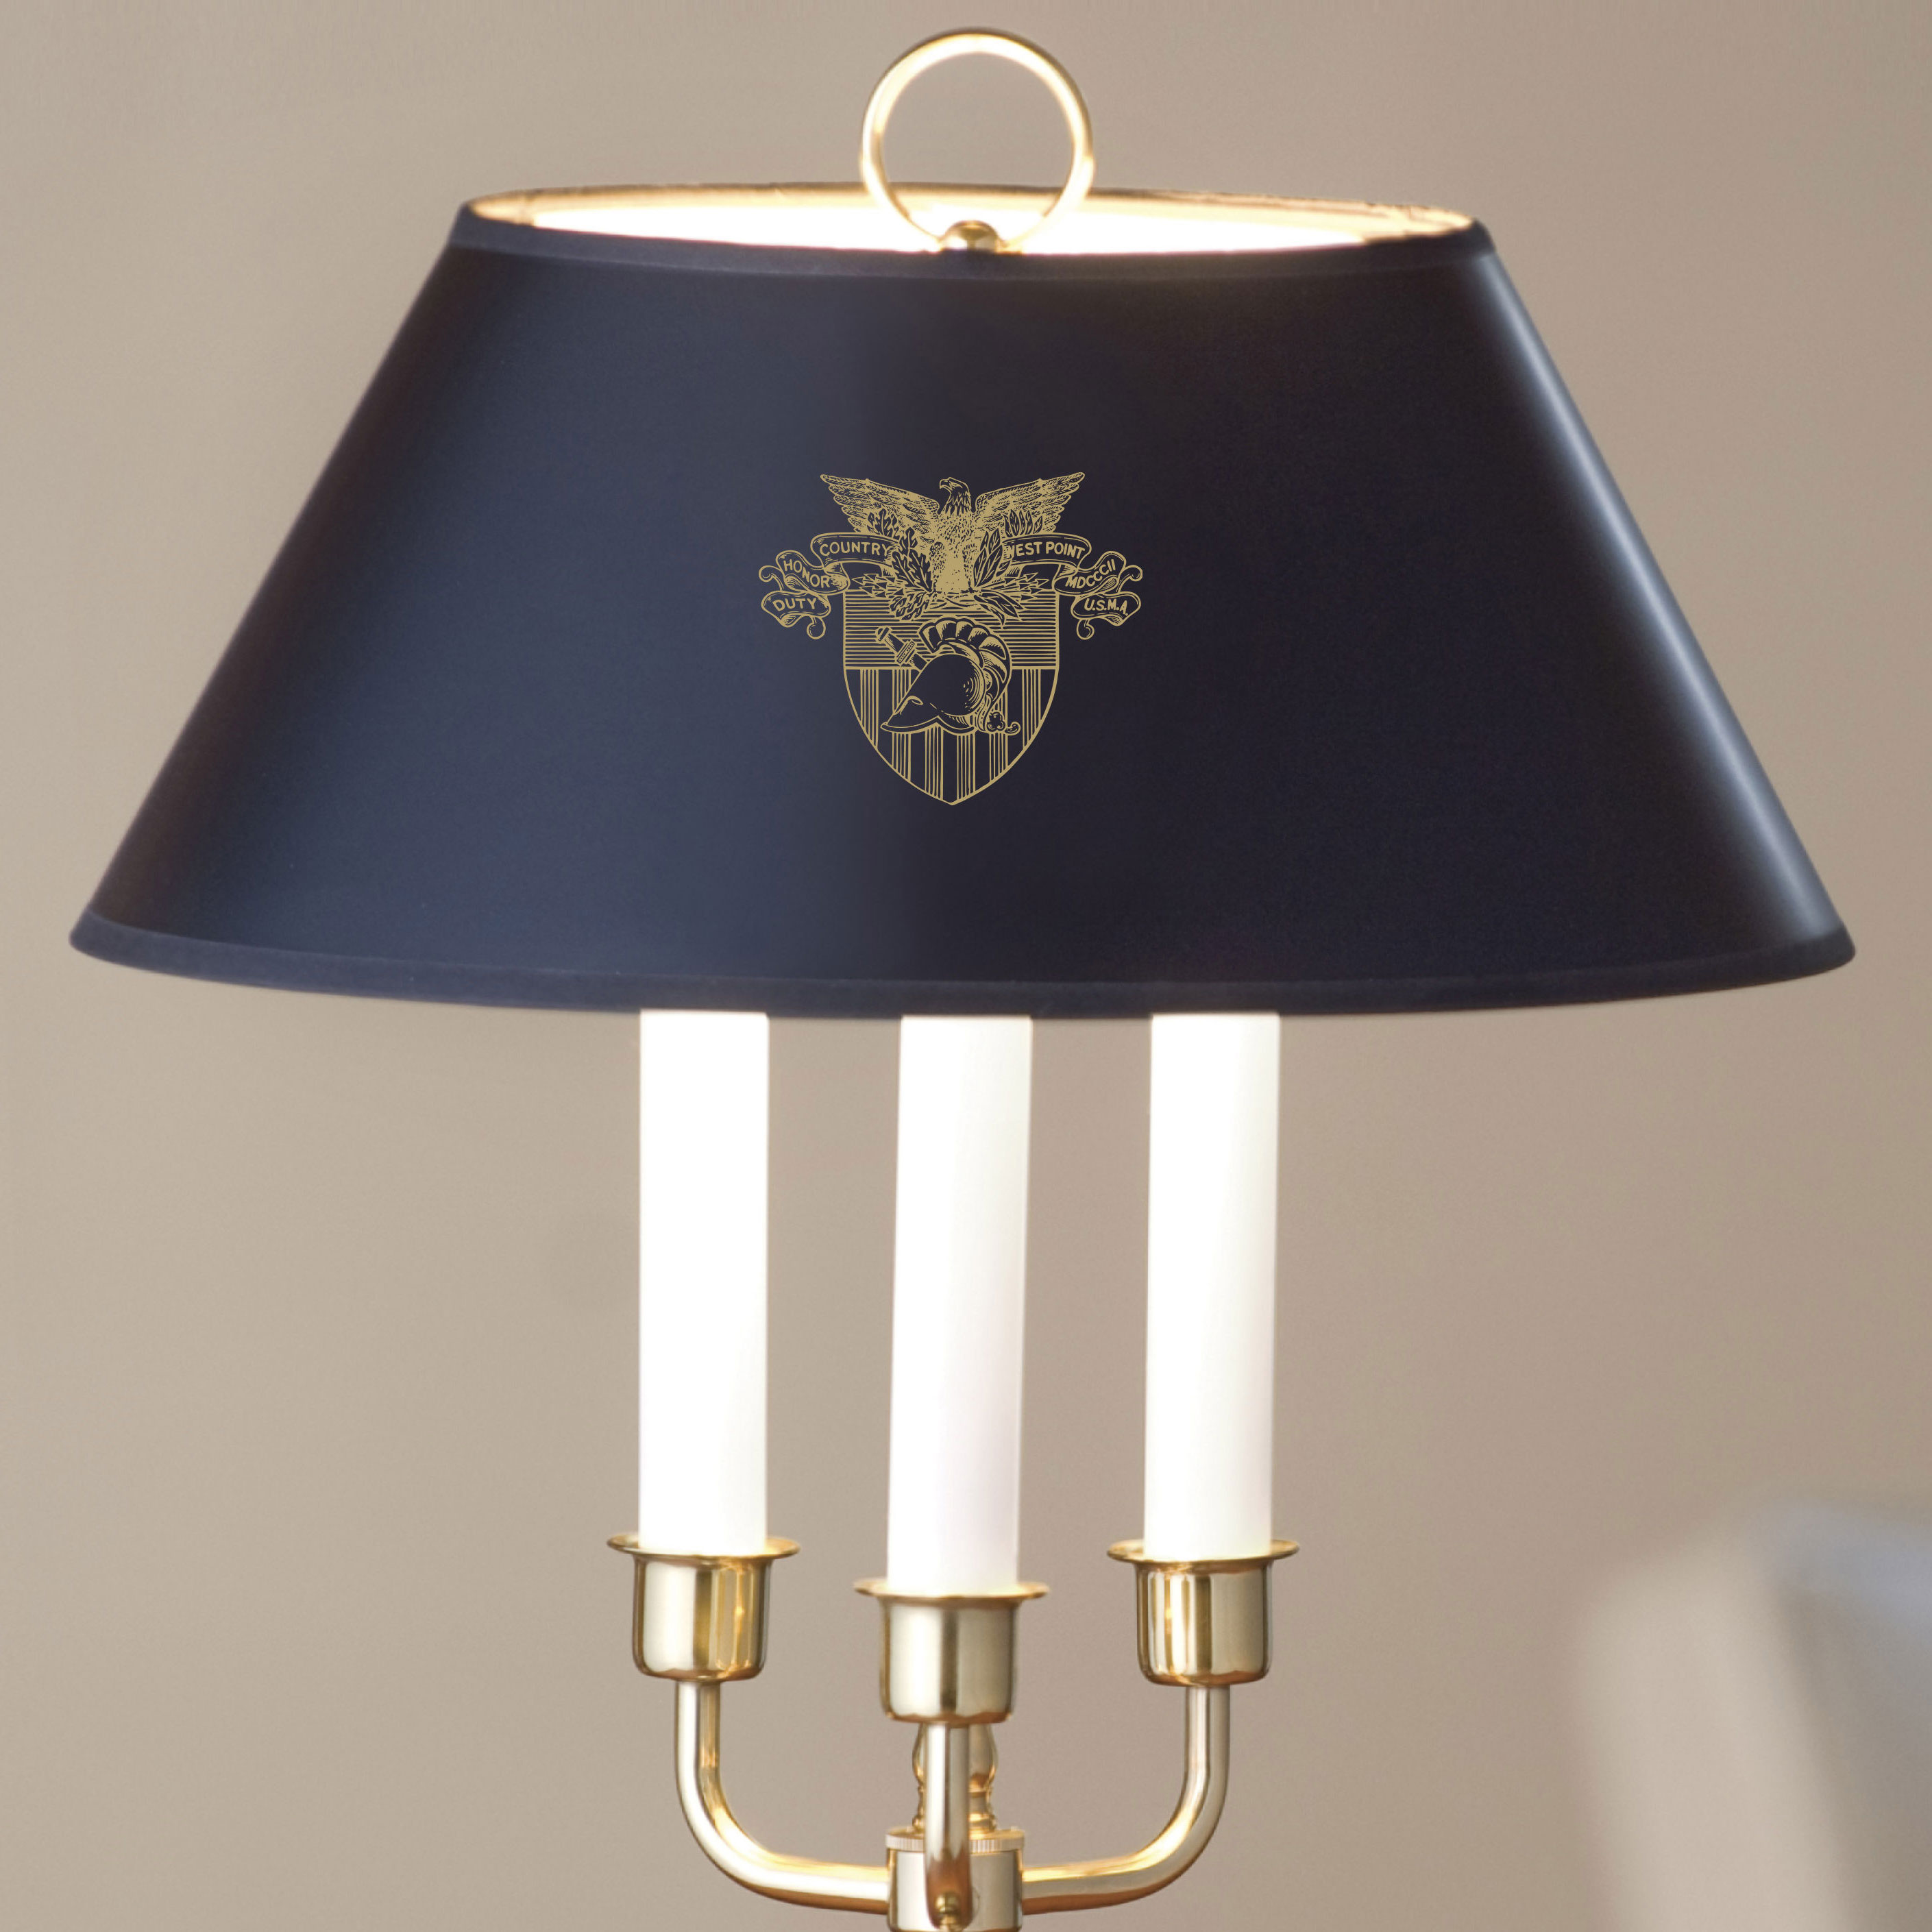 Traditional West Point Lamp in Brass and Marble